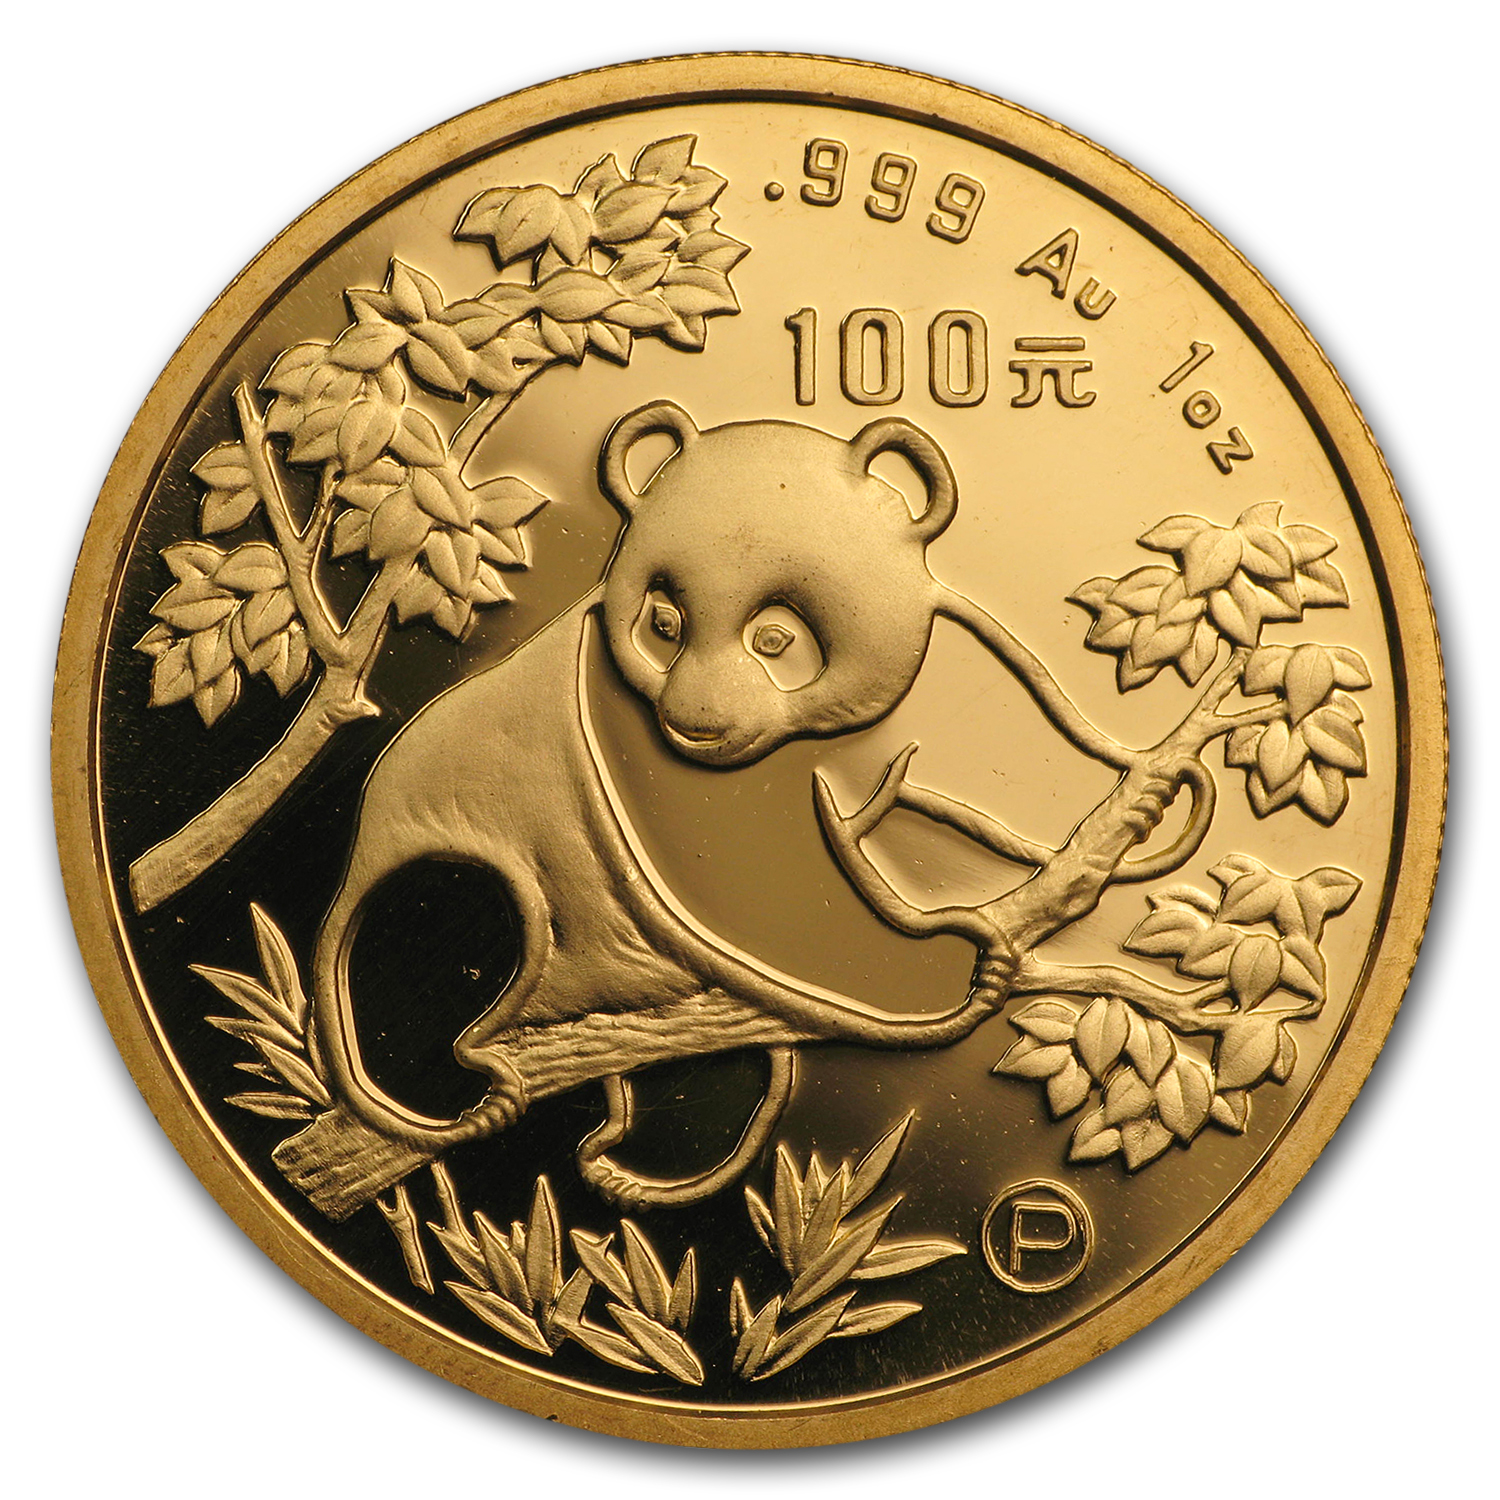 1992 China 5-Coin Gold Panda Proof Set (Original Box & COA)